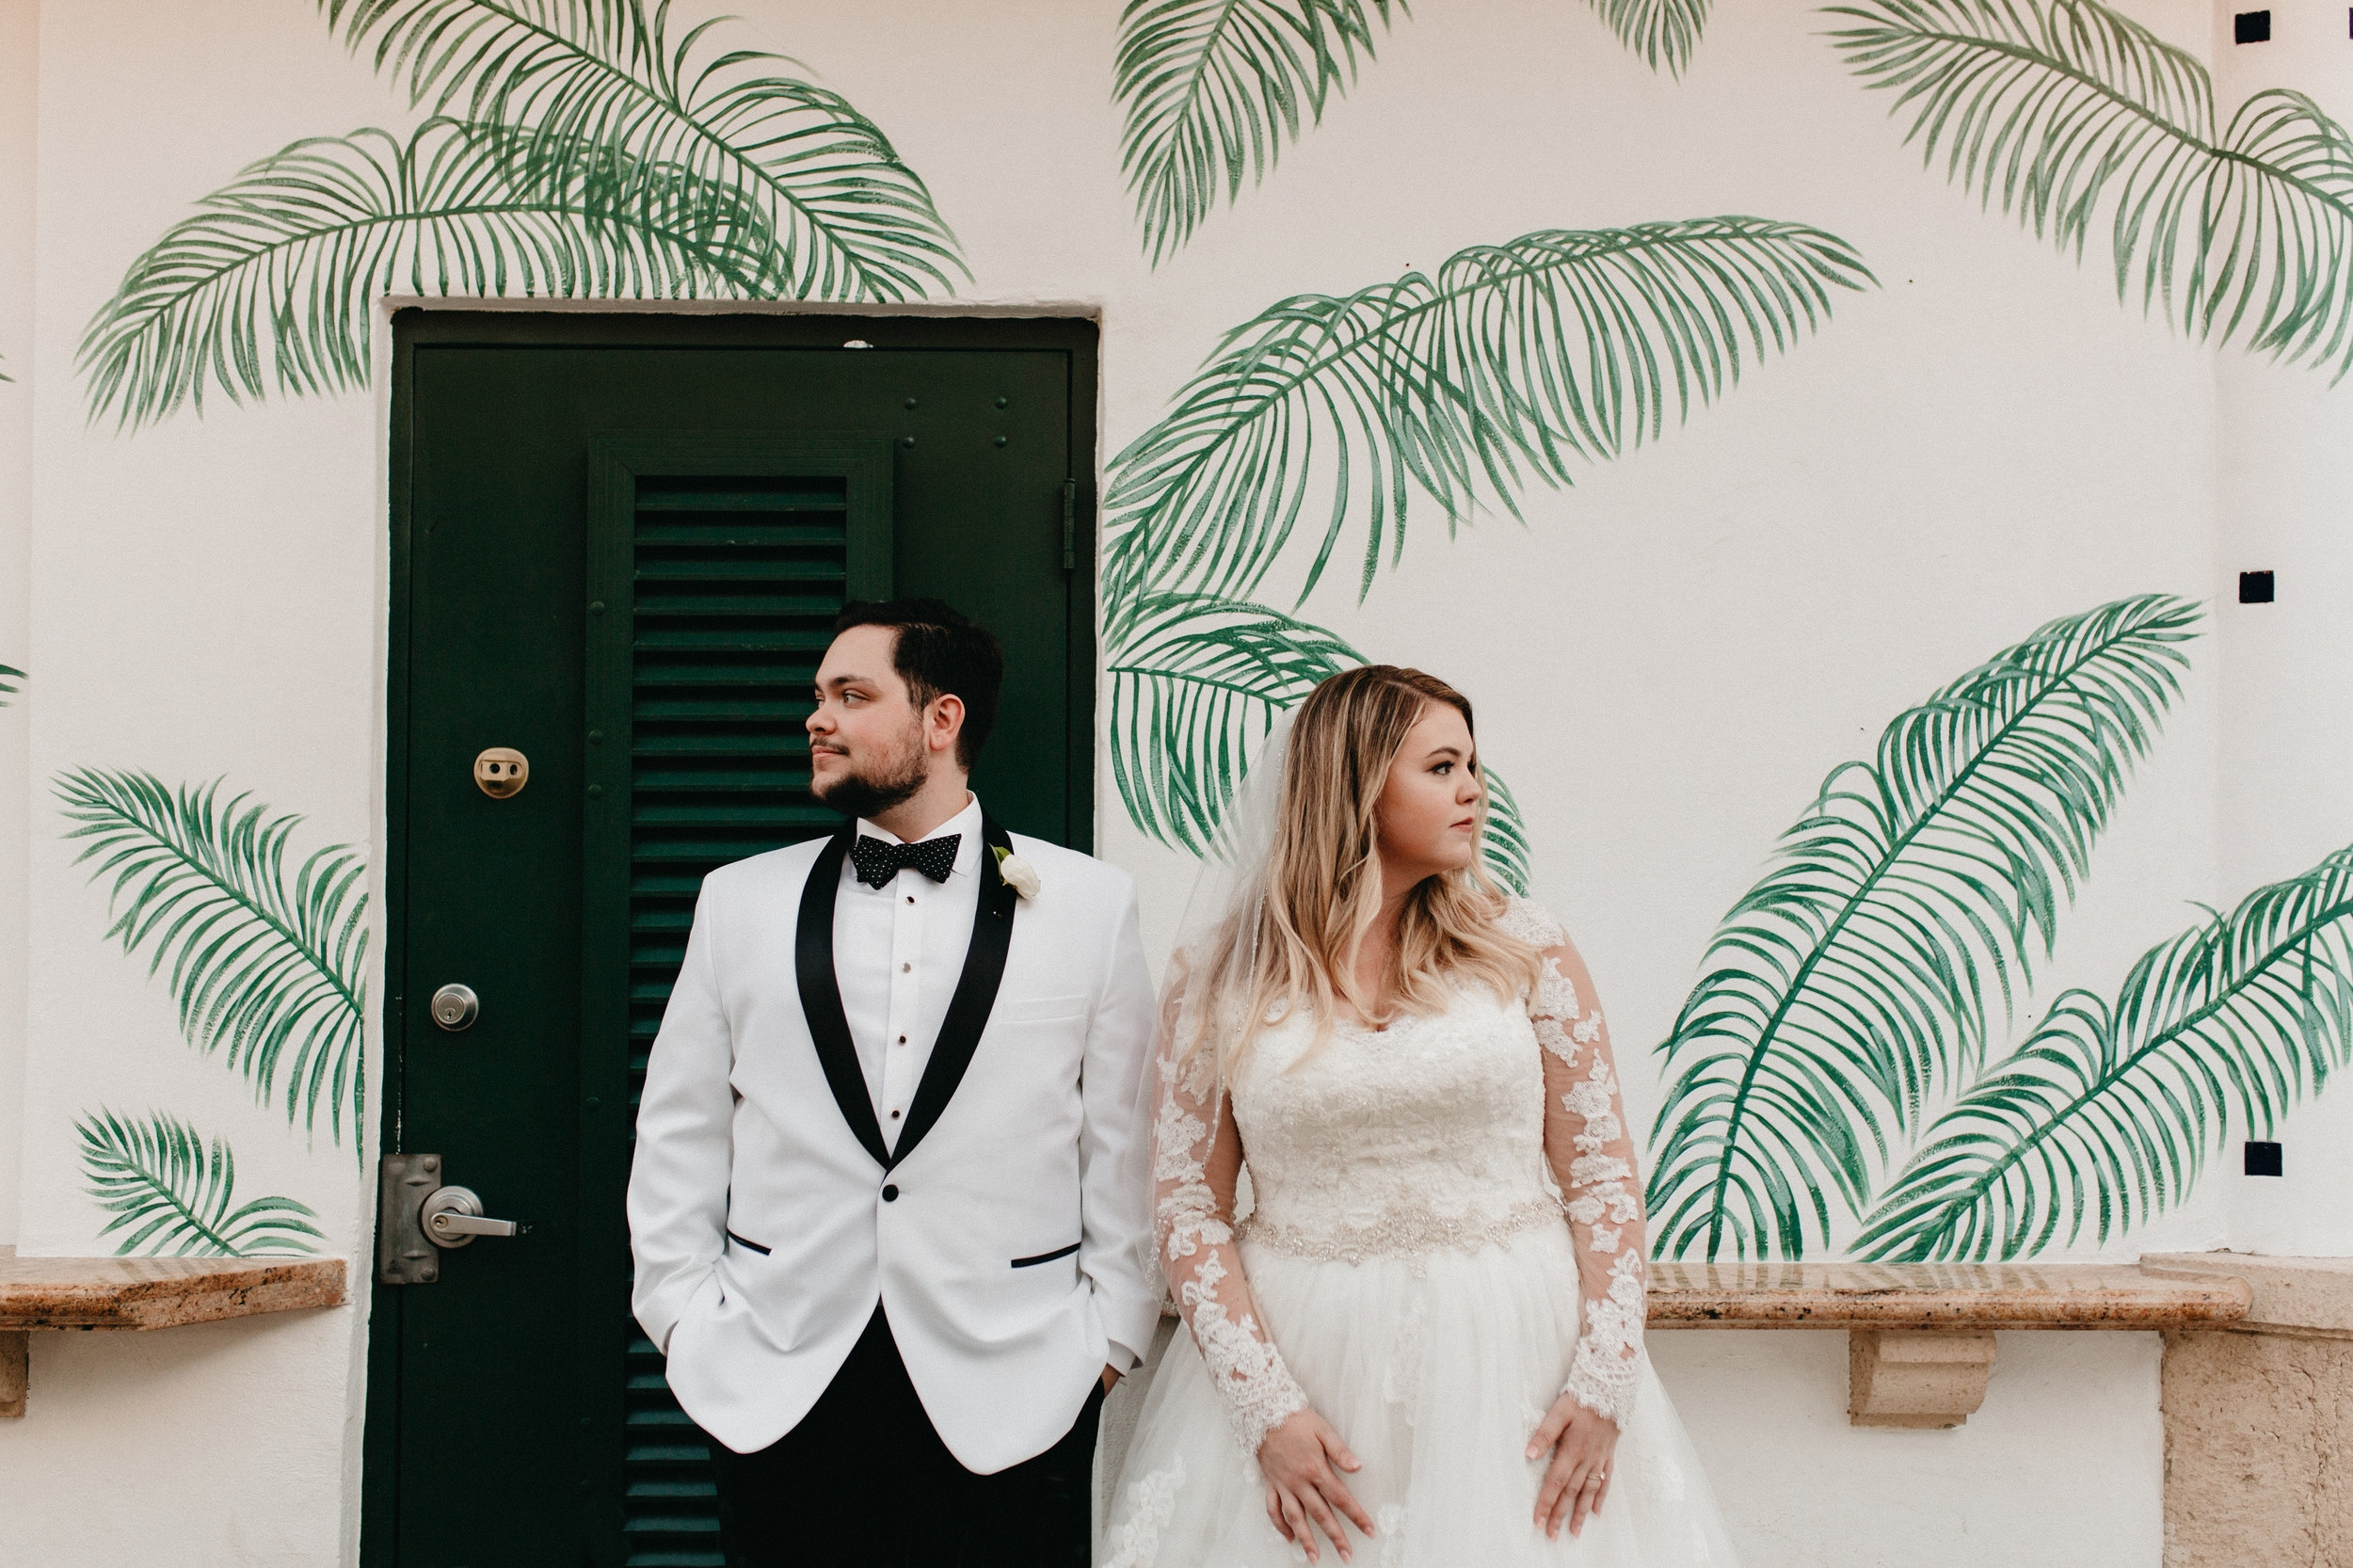 Ben + Karrie | West Palm Beach, Florida | Harriet Himmel Theatre